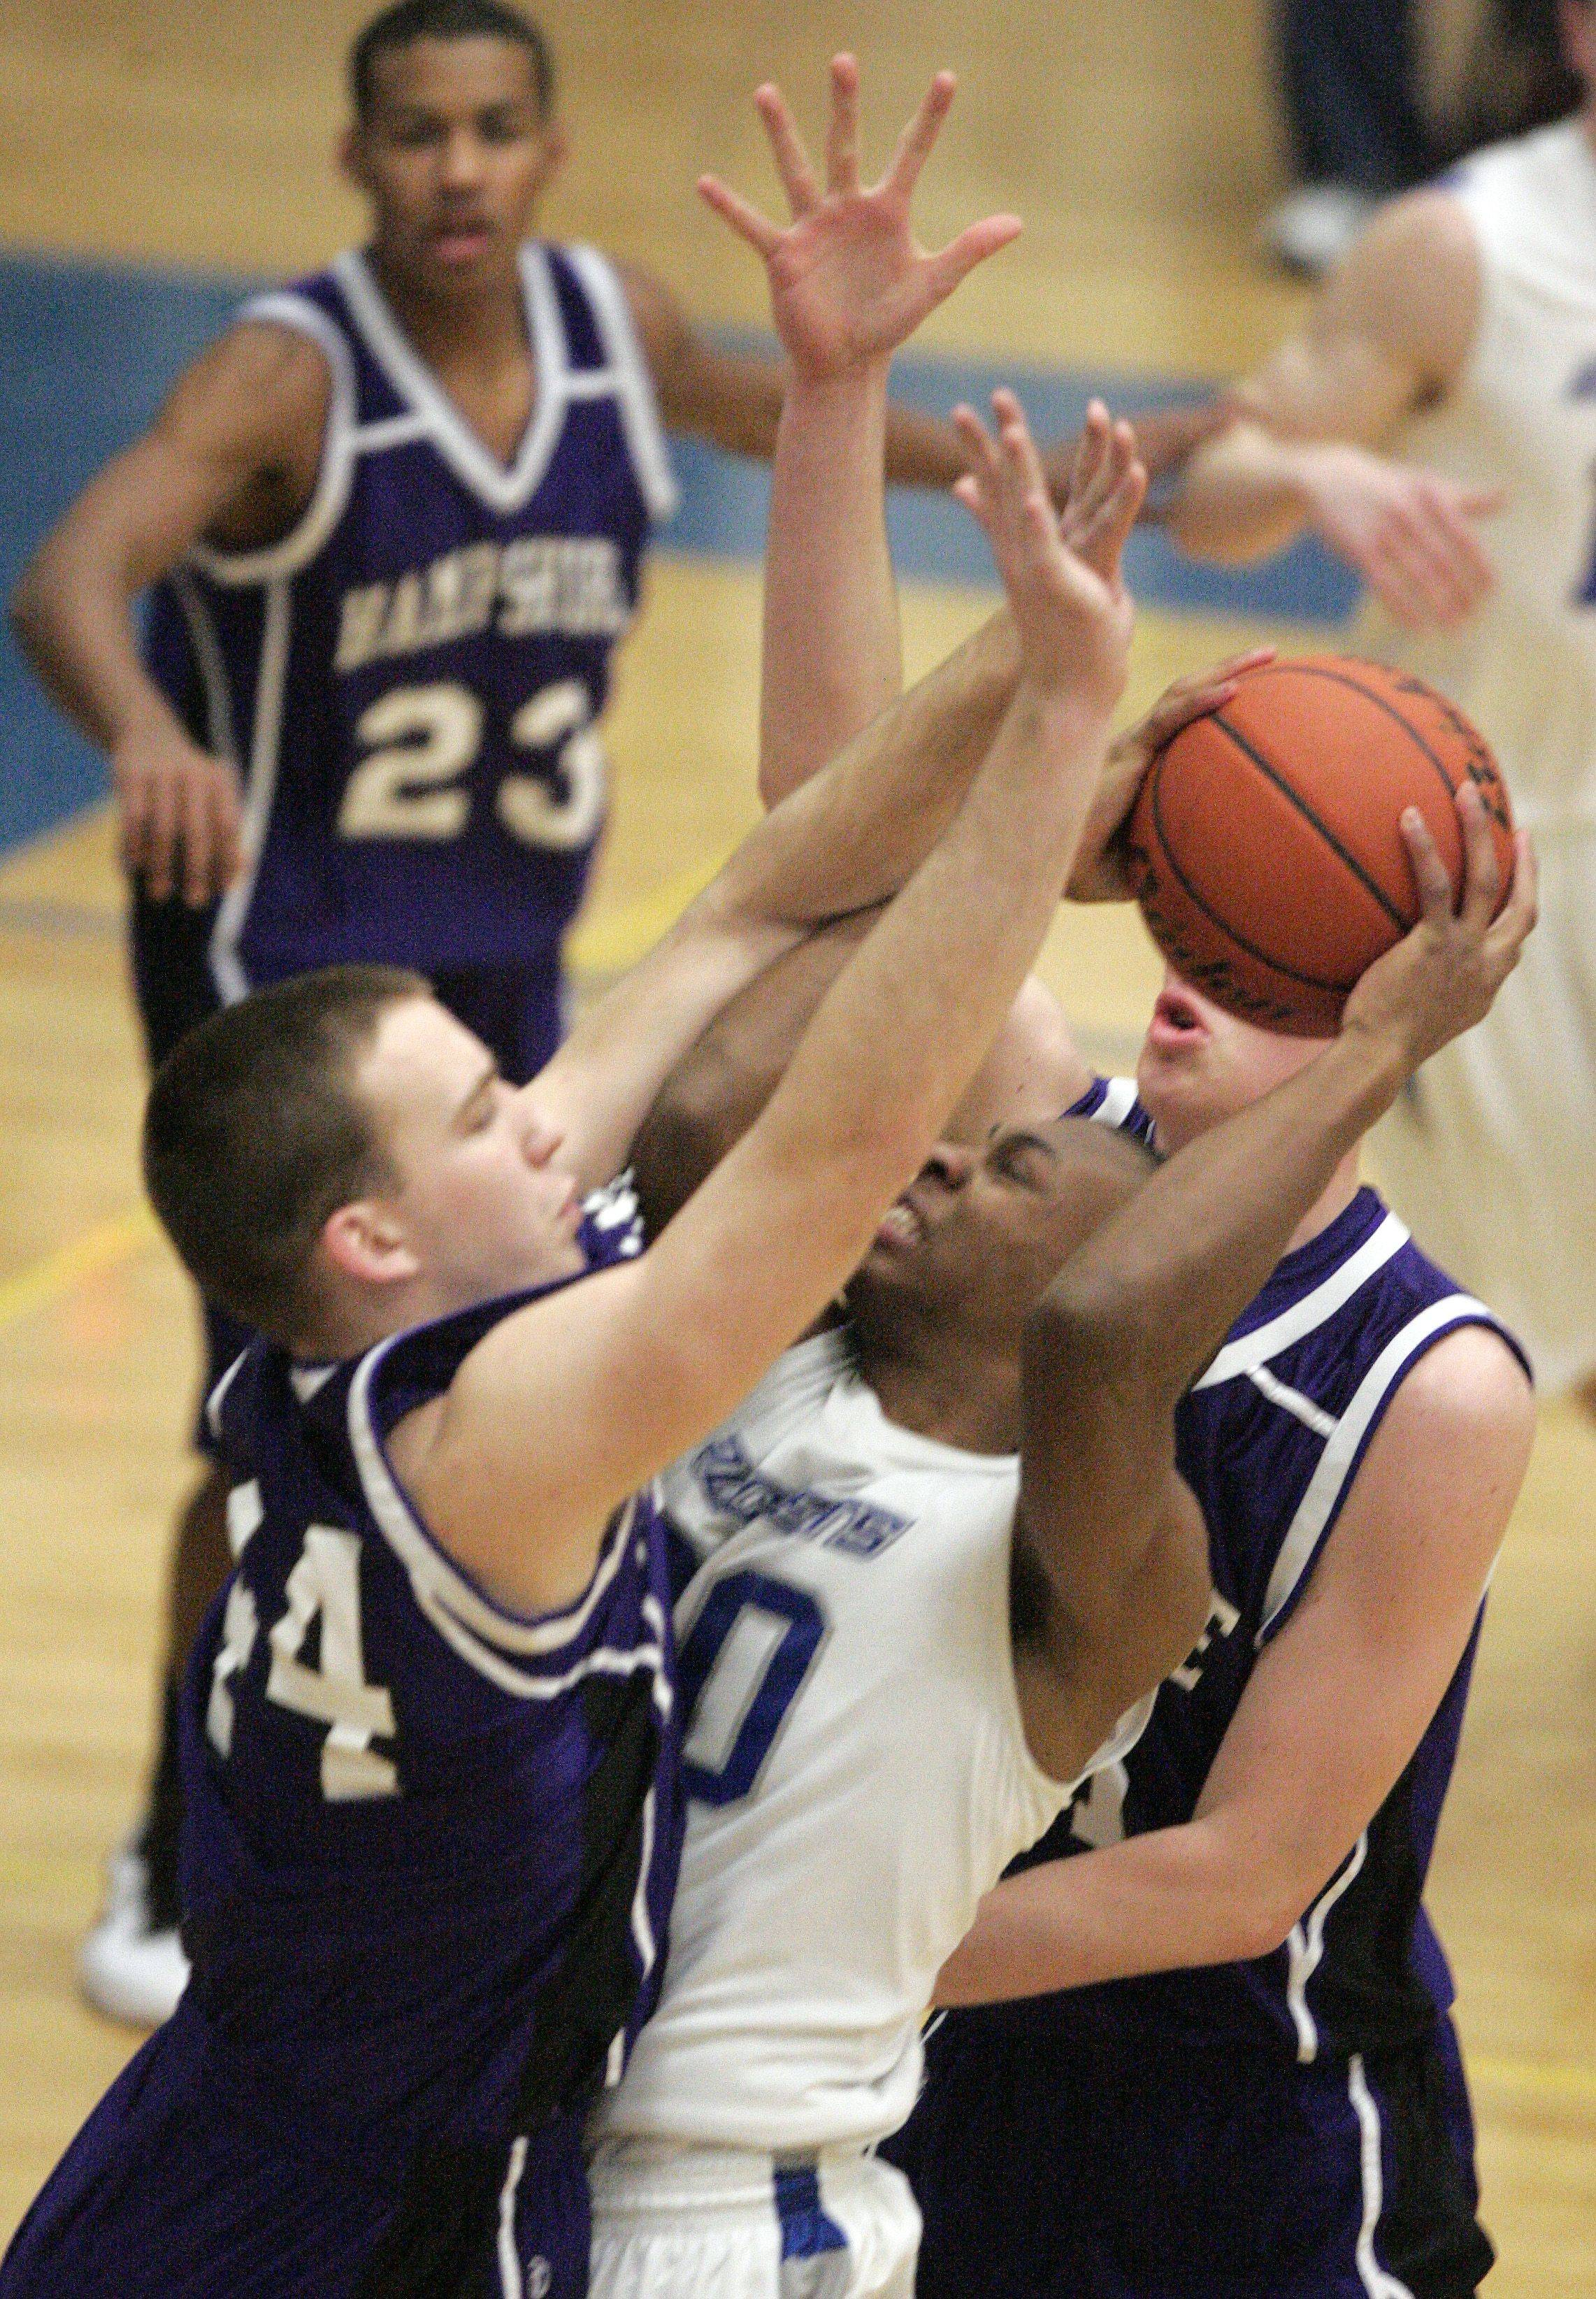 Burlington Central's Ray Hunnicutt (20) is sandwiched between Hampshire's Tyler Watzlawick Shane Hernandez at Burlington Central Saturday night.